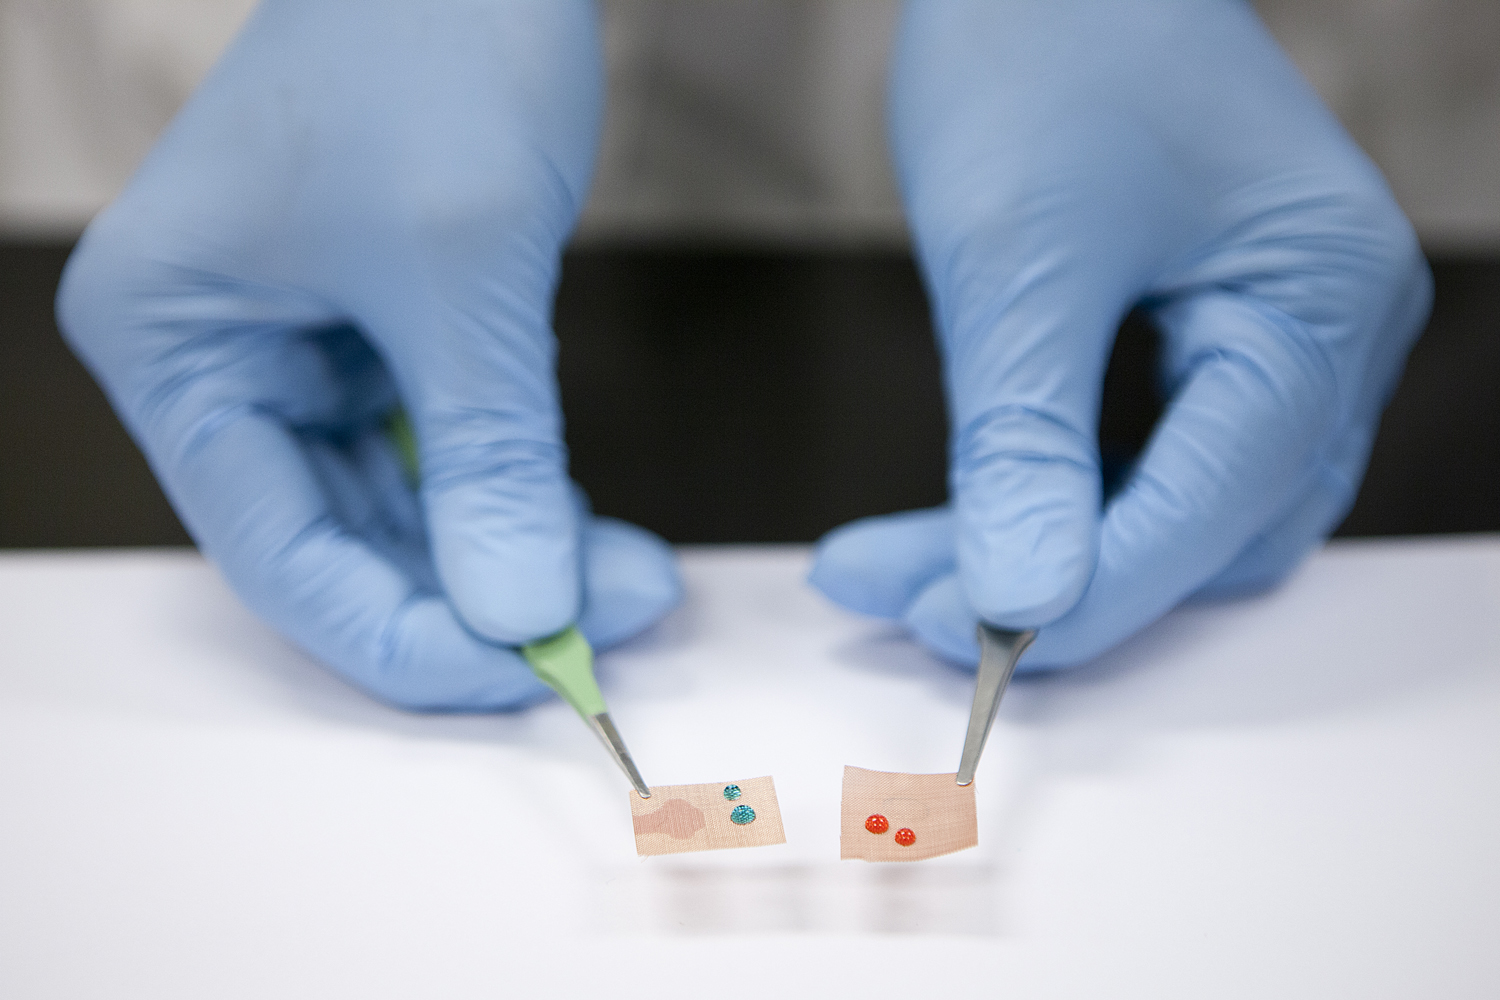 hydrophilic, oleophobic smart filter